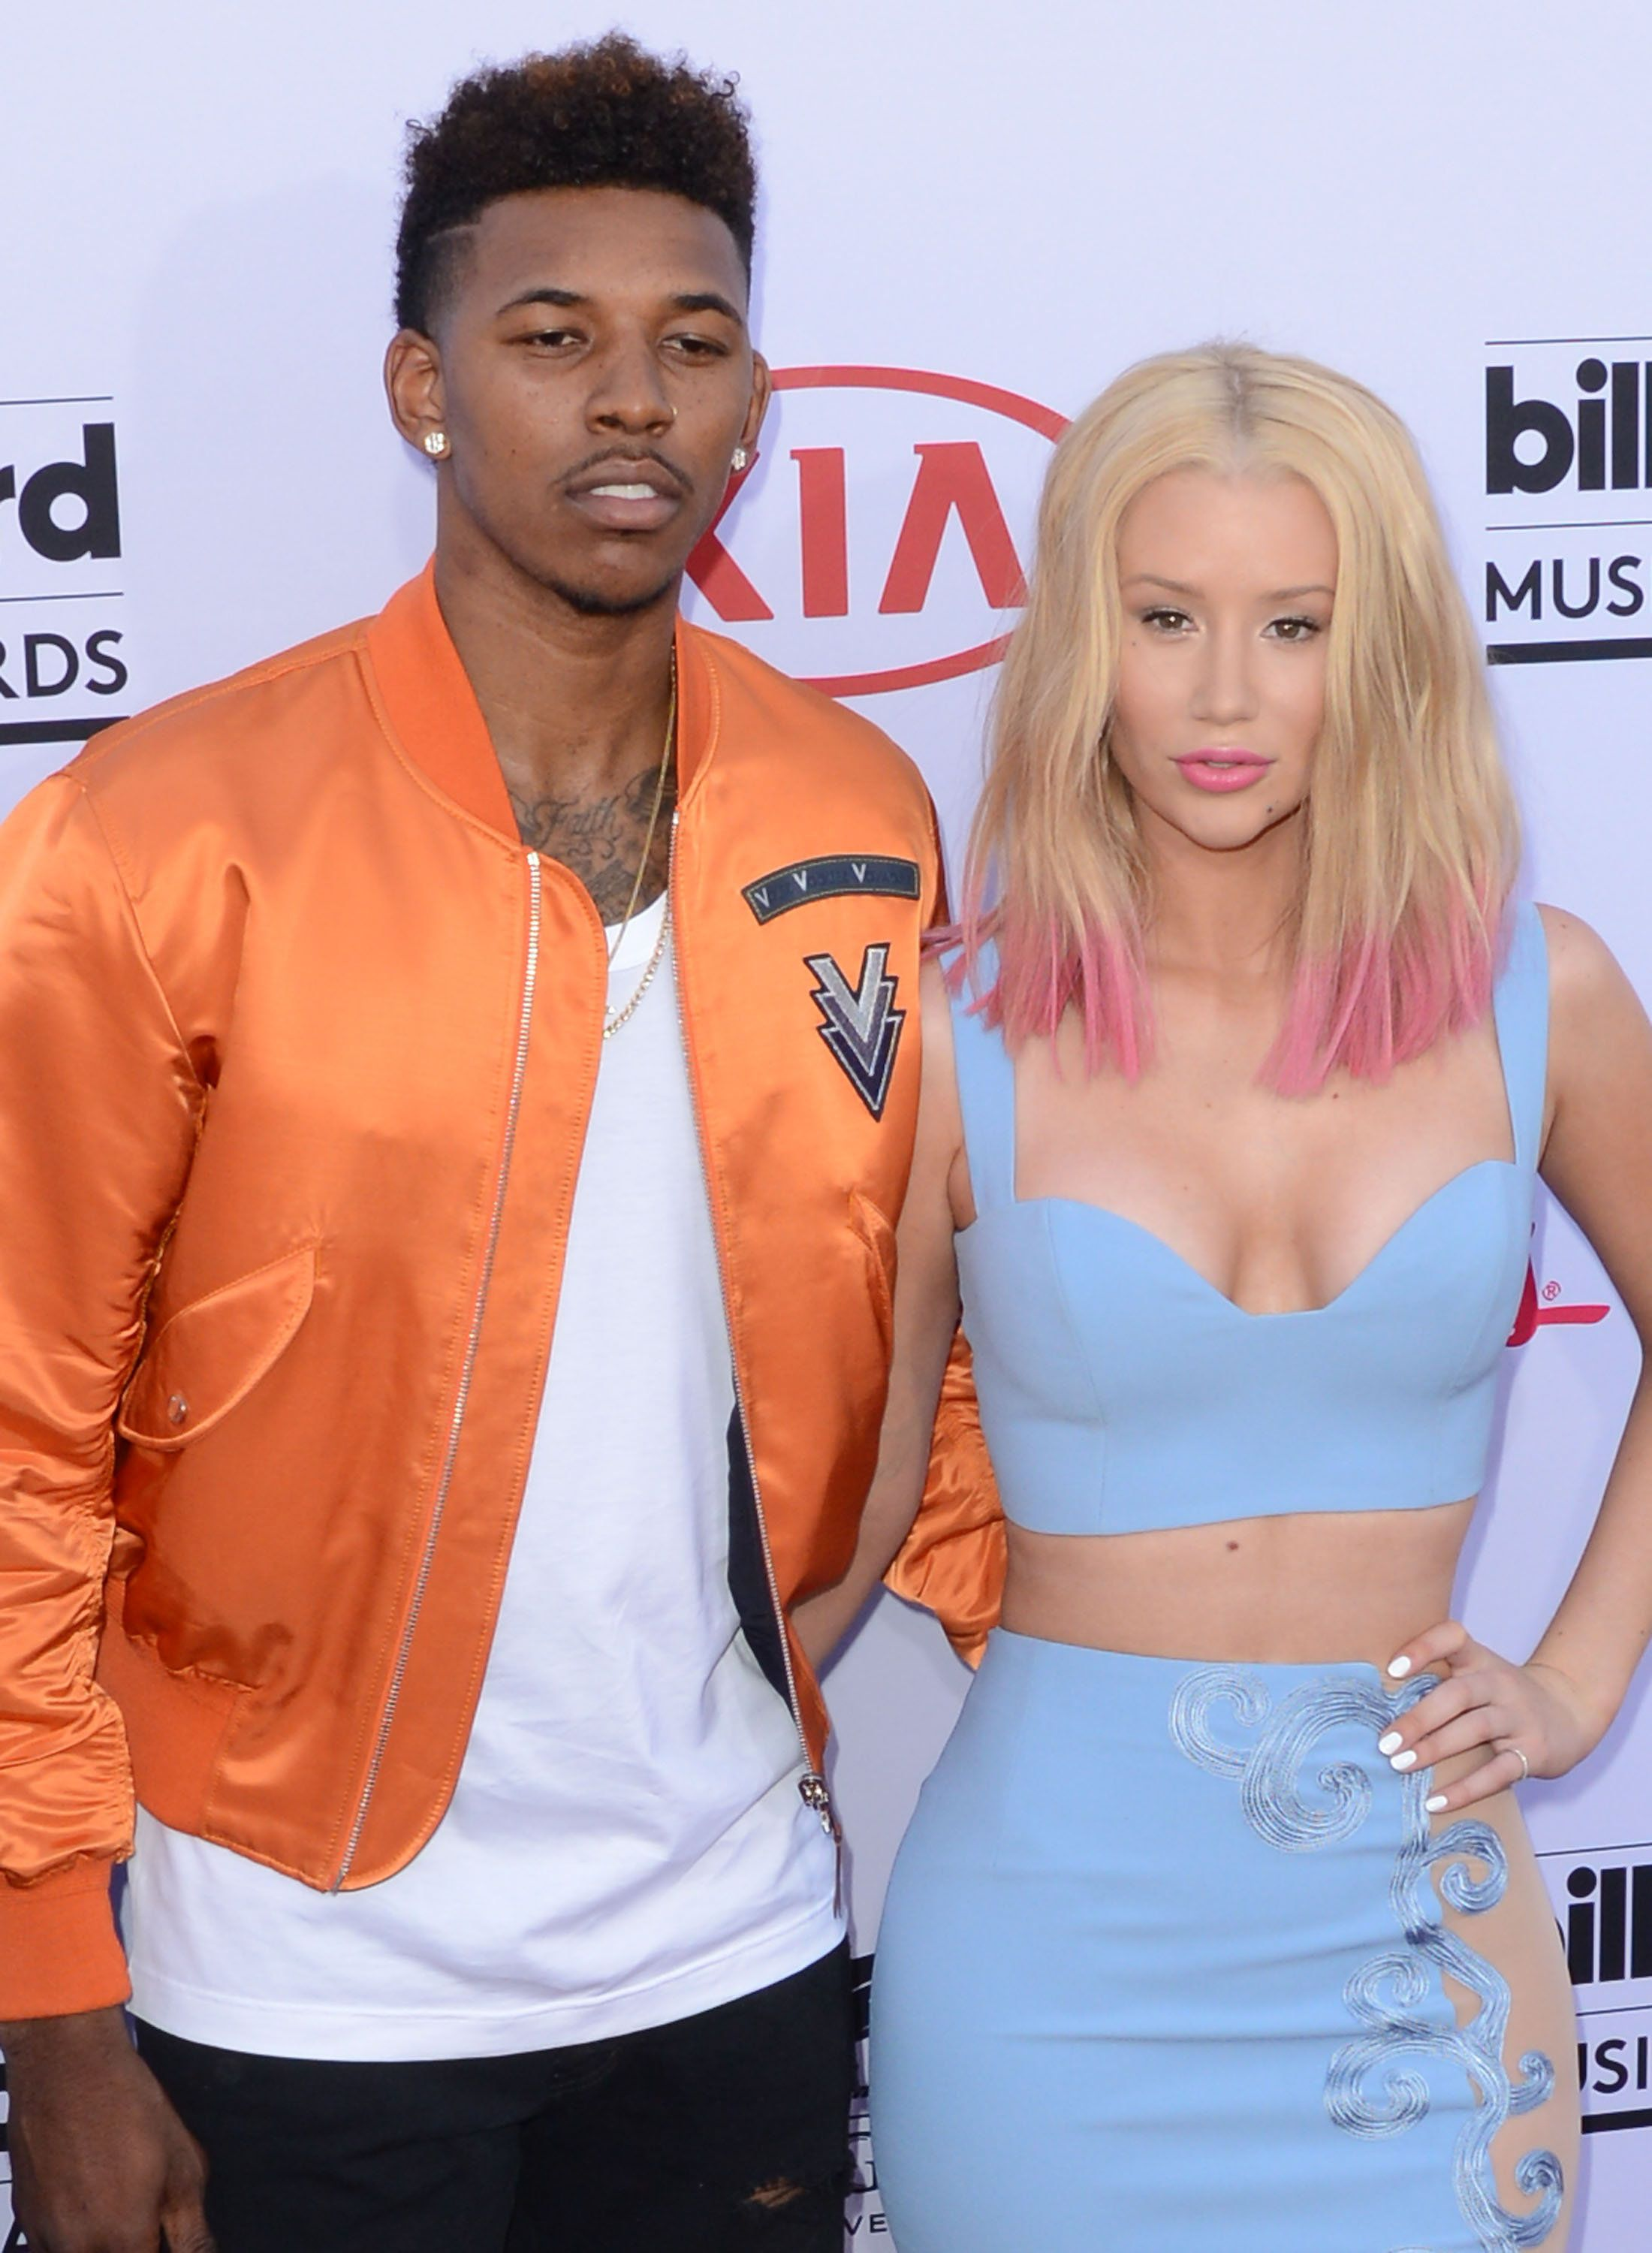 LAS VEGAS, NV - MAY 17:  Athlete Nick Young and Iggy Azalea attend The 2015 Billboard Music Awards on May 17, 2015 in Las Vegas, Nevada.  (Photo by C Flanigan/Getty Images)